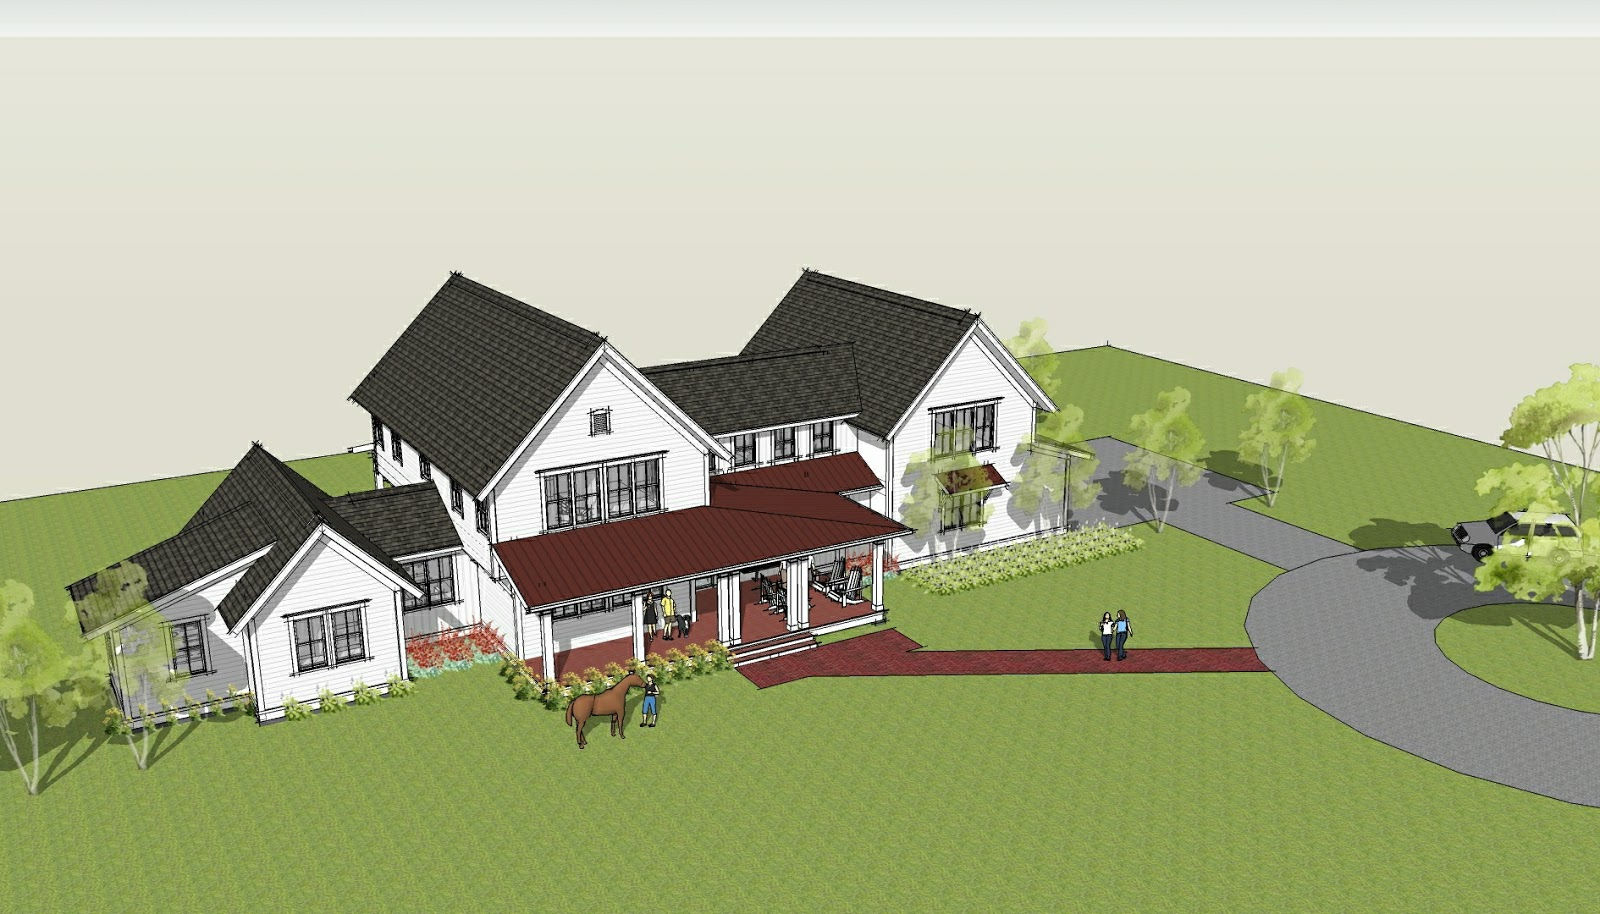 Ron brenner architects new modern farmhouse design completed for Contemporary farmhouse floor plans